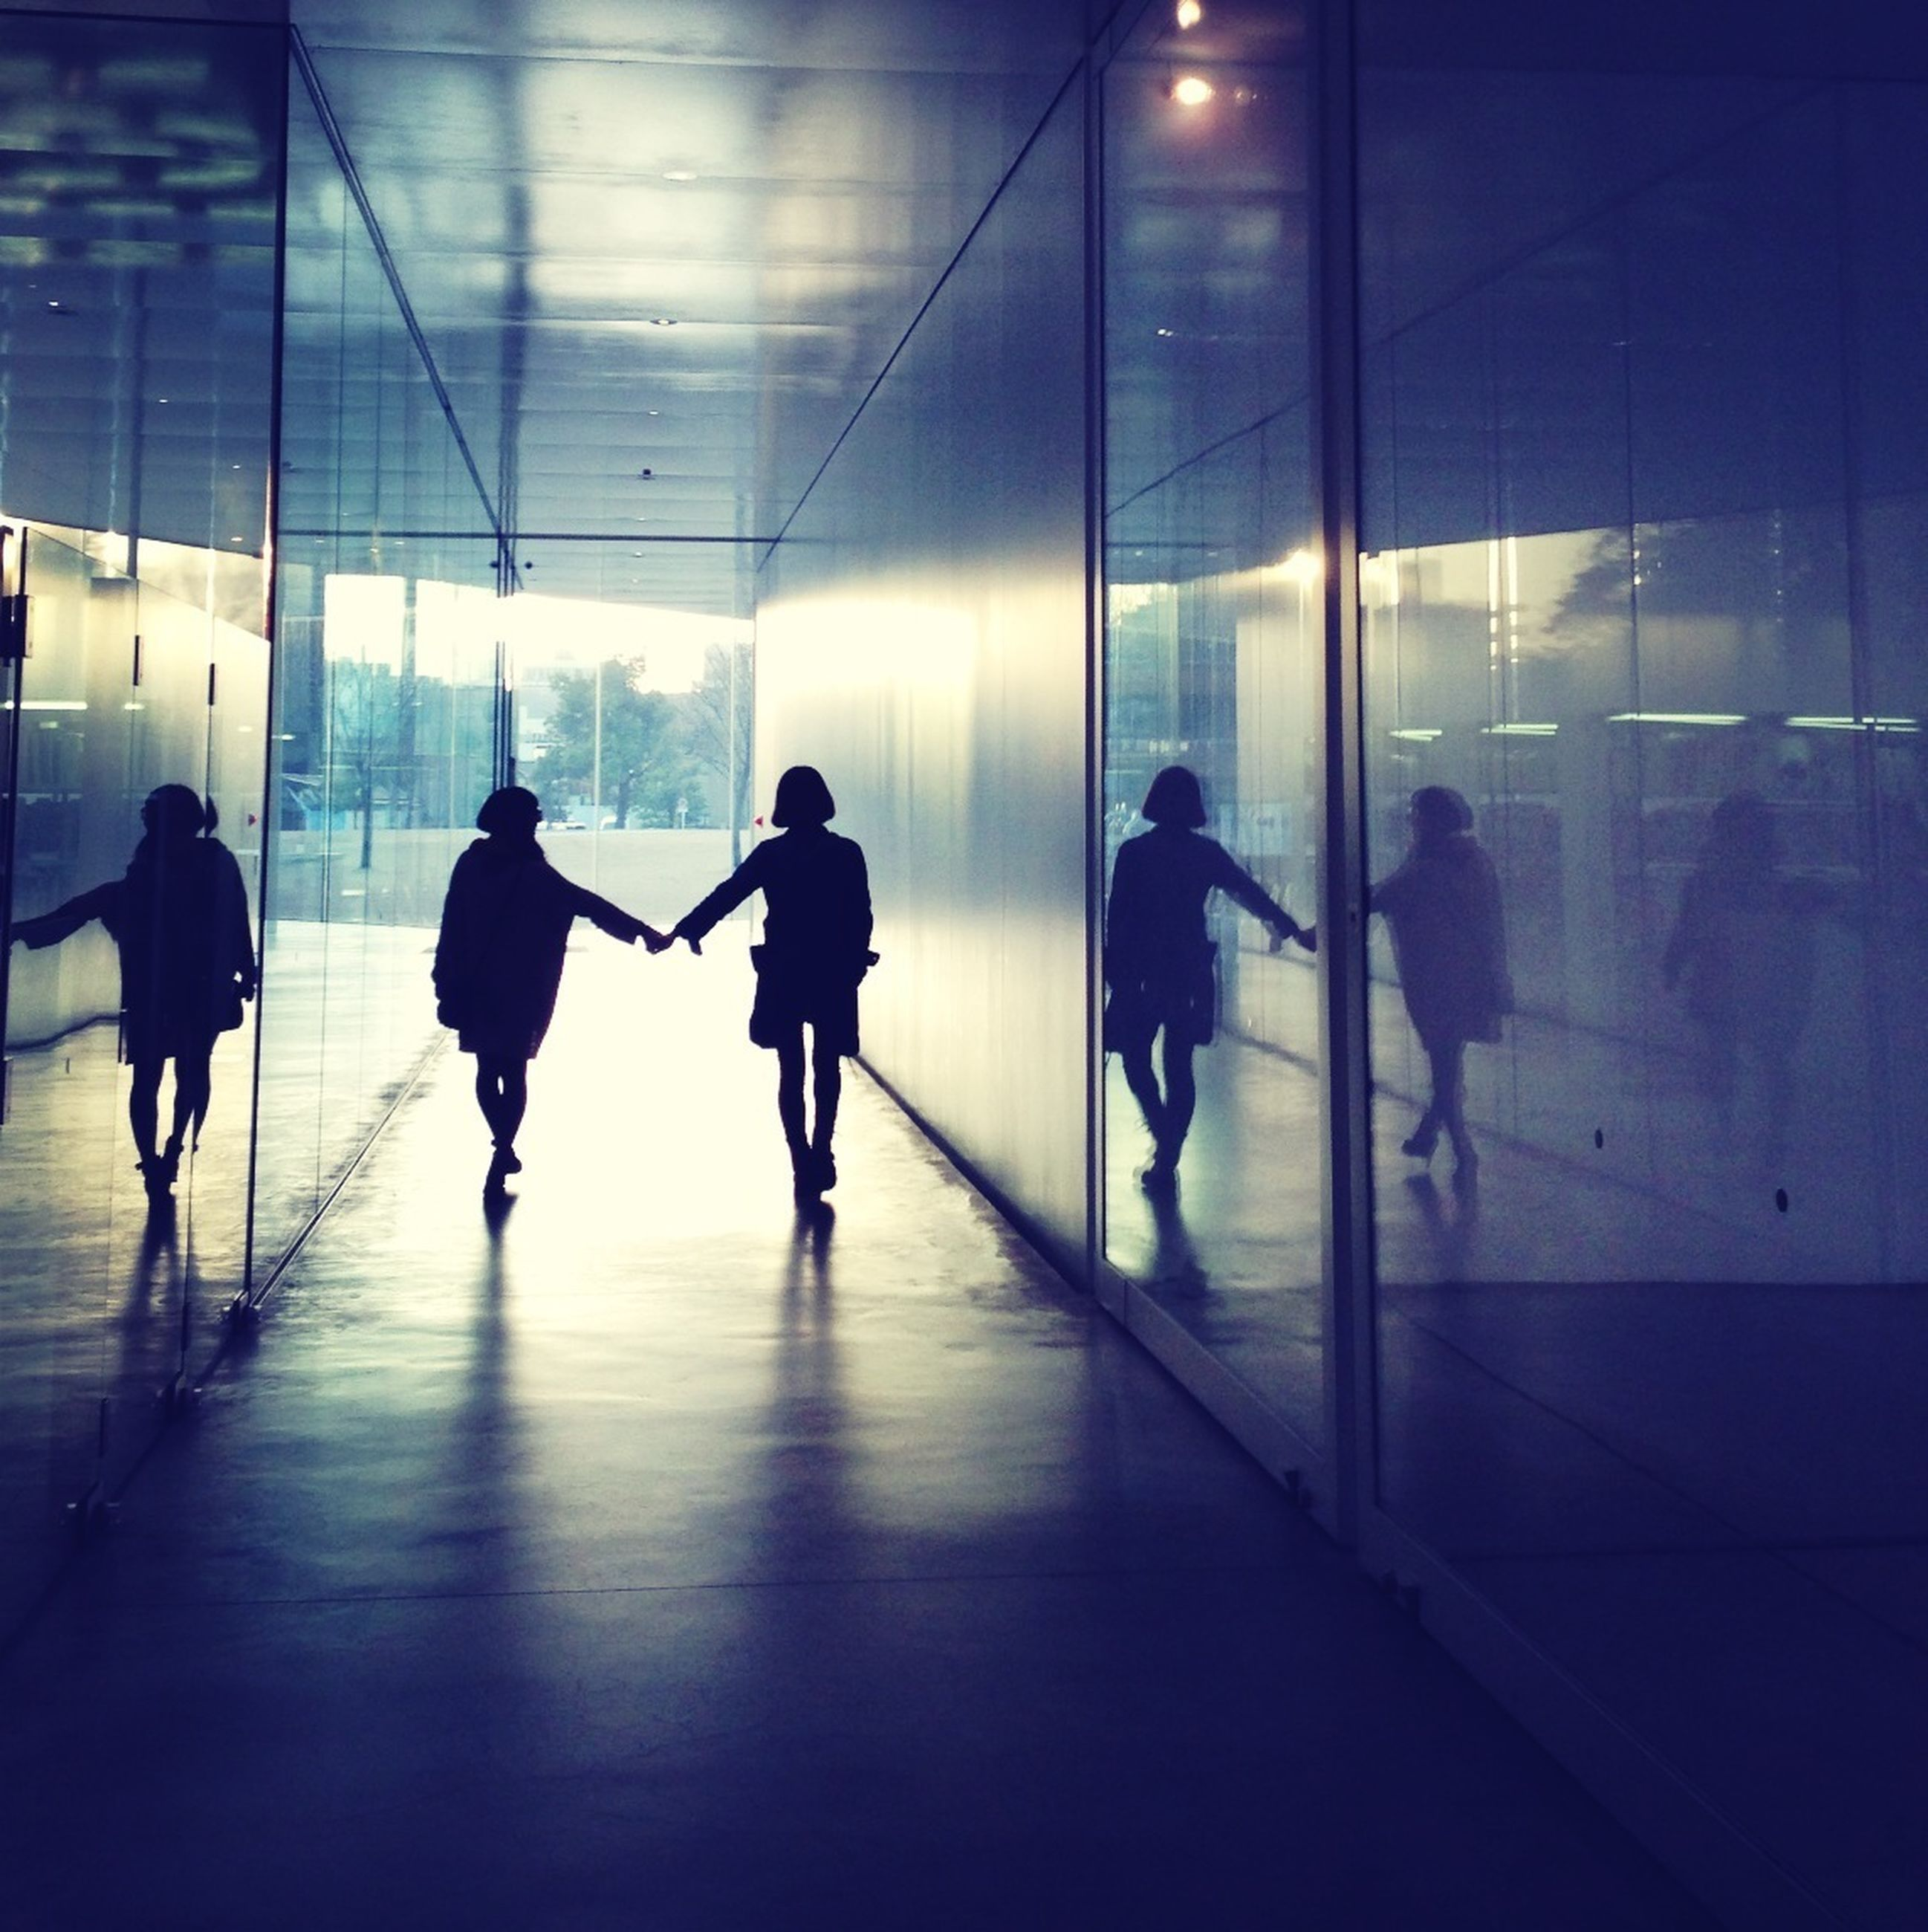 indoors, men, lifestyles, walking, person, silhouette, illuminated, full length, large group of people, flooring, reflection, leisure activity, built structure, airport, architecture, glass - material, medium group of people, city life, corridor